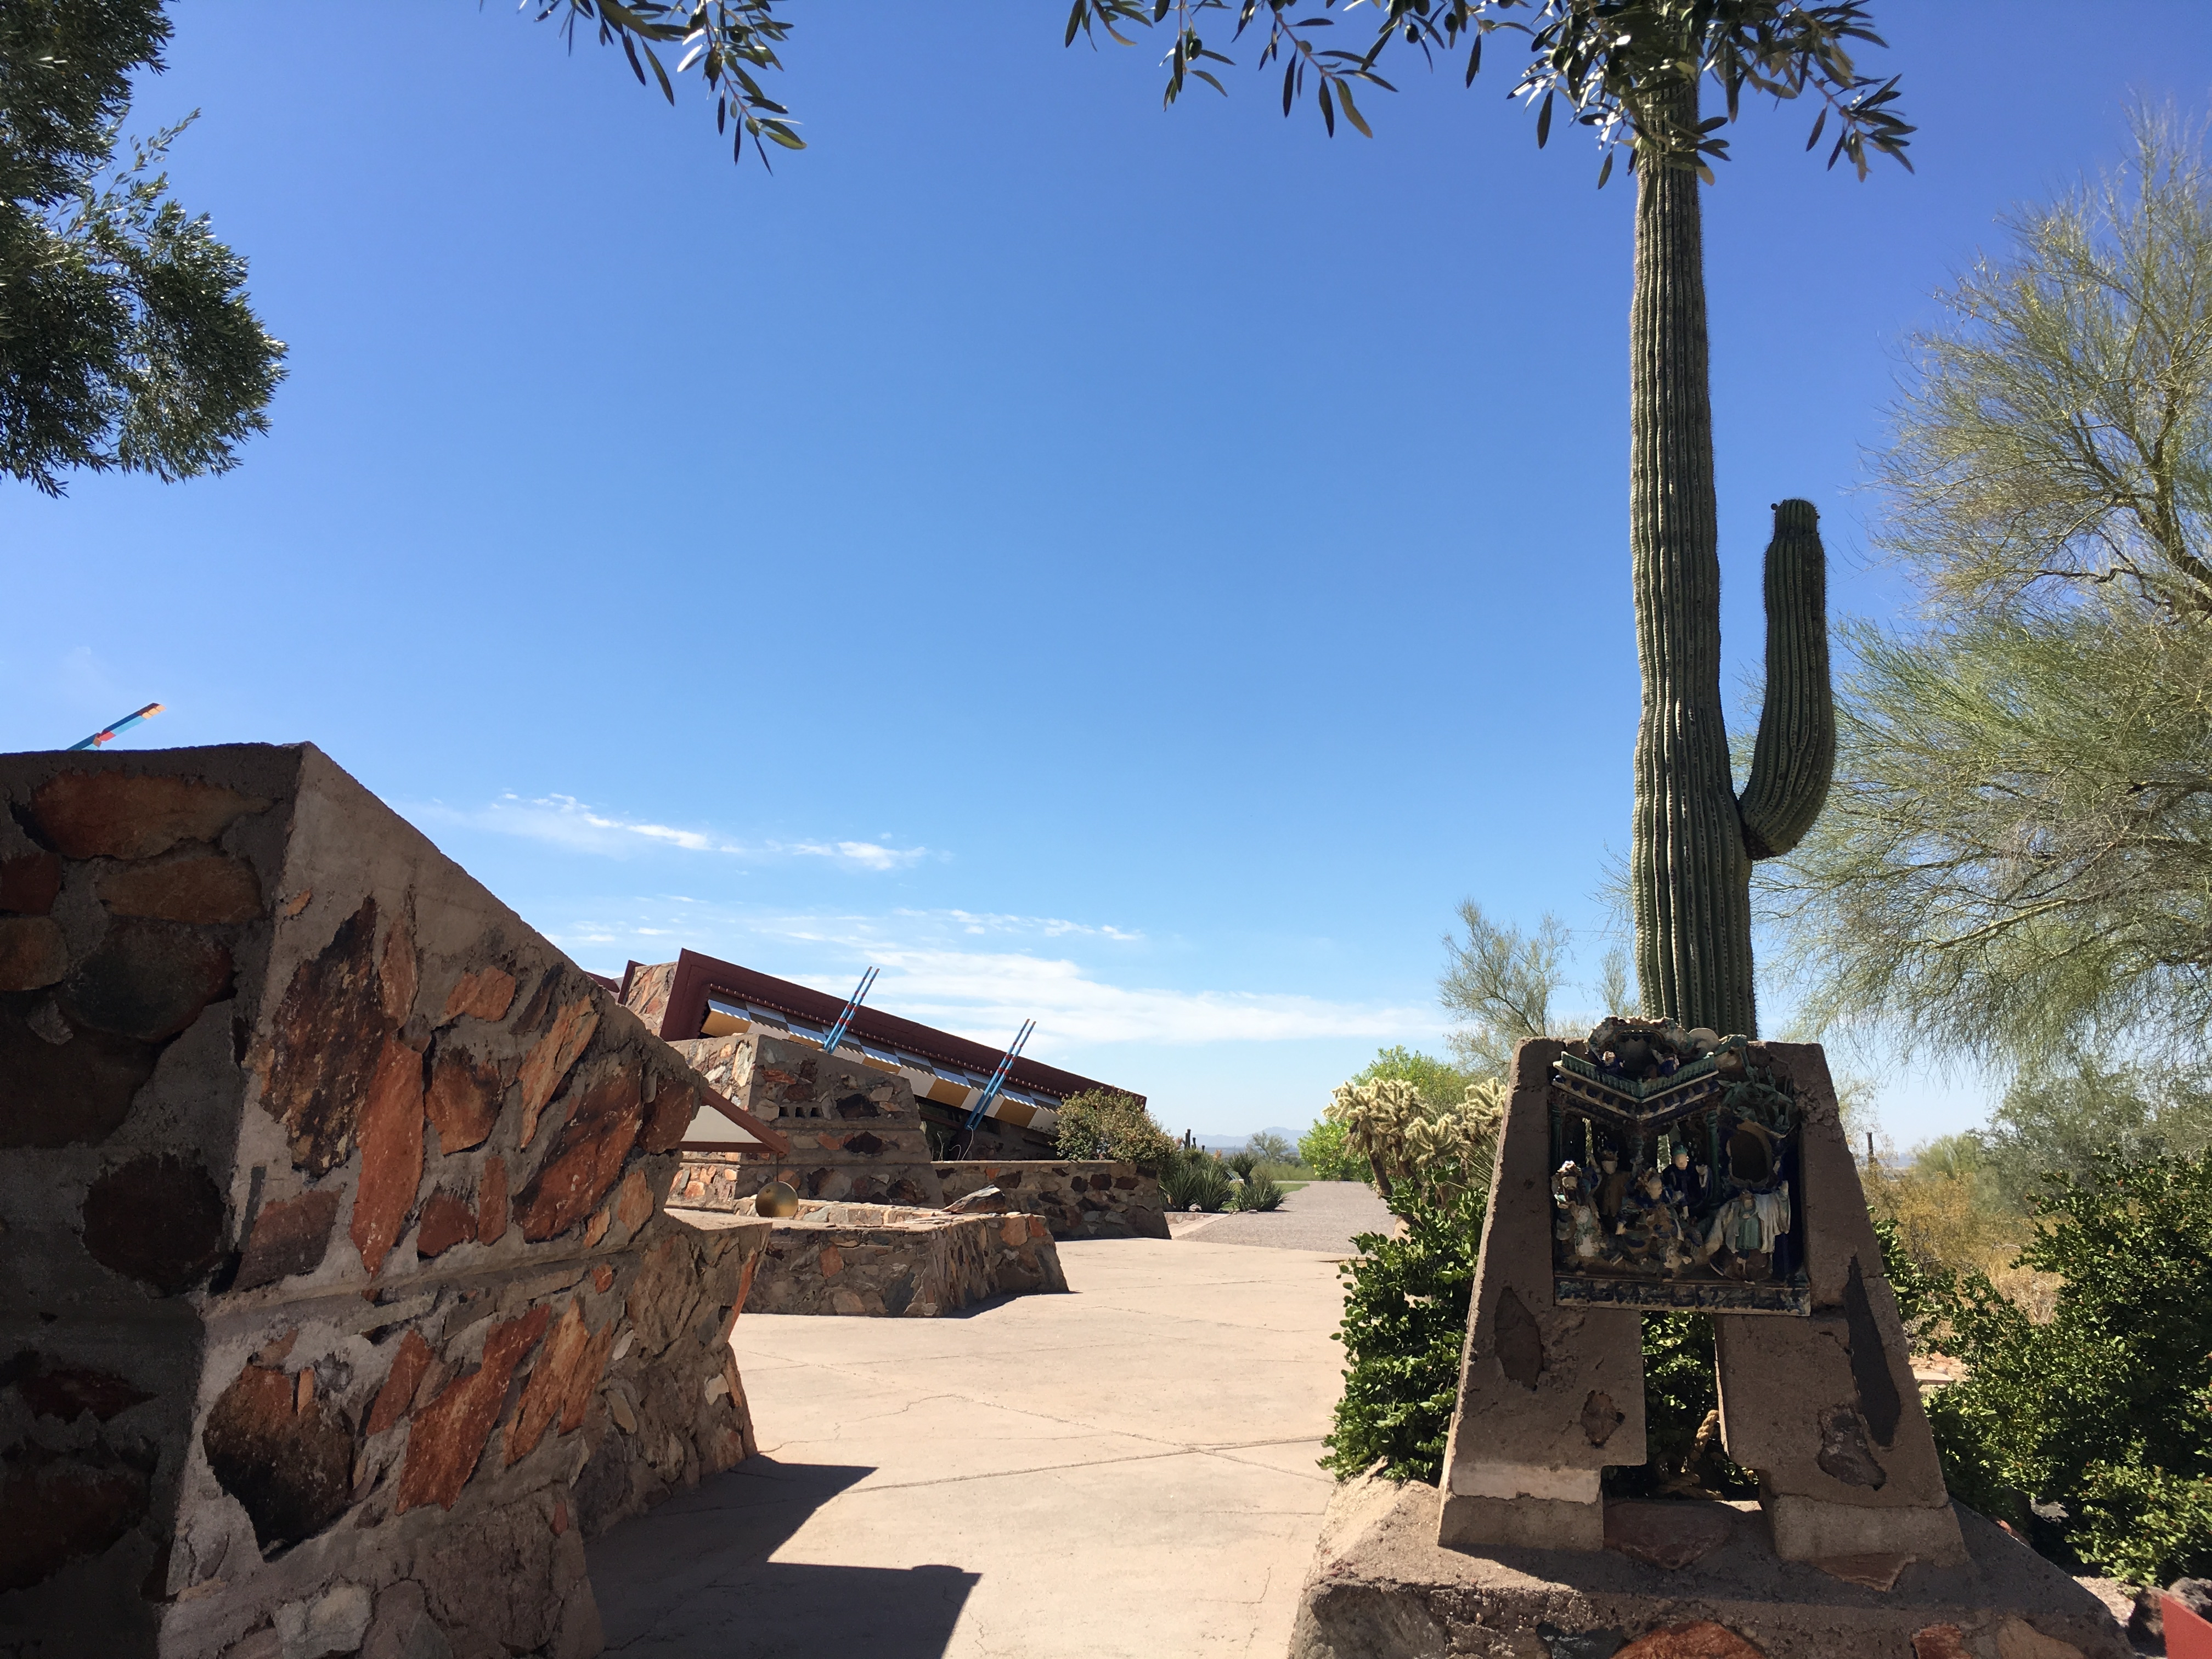 Entrance to Taliesin West